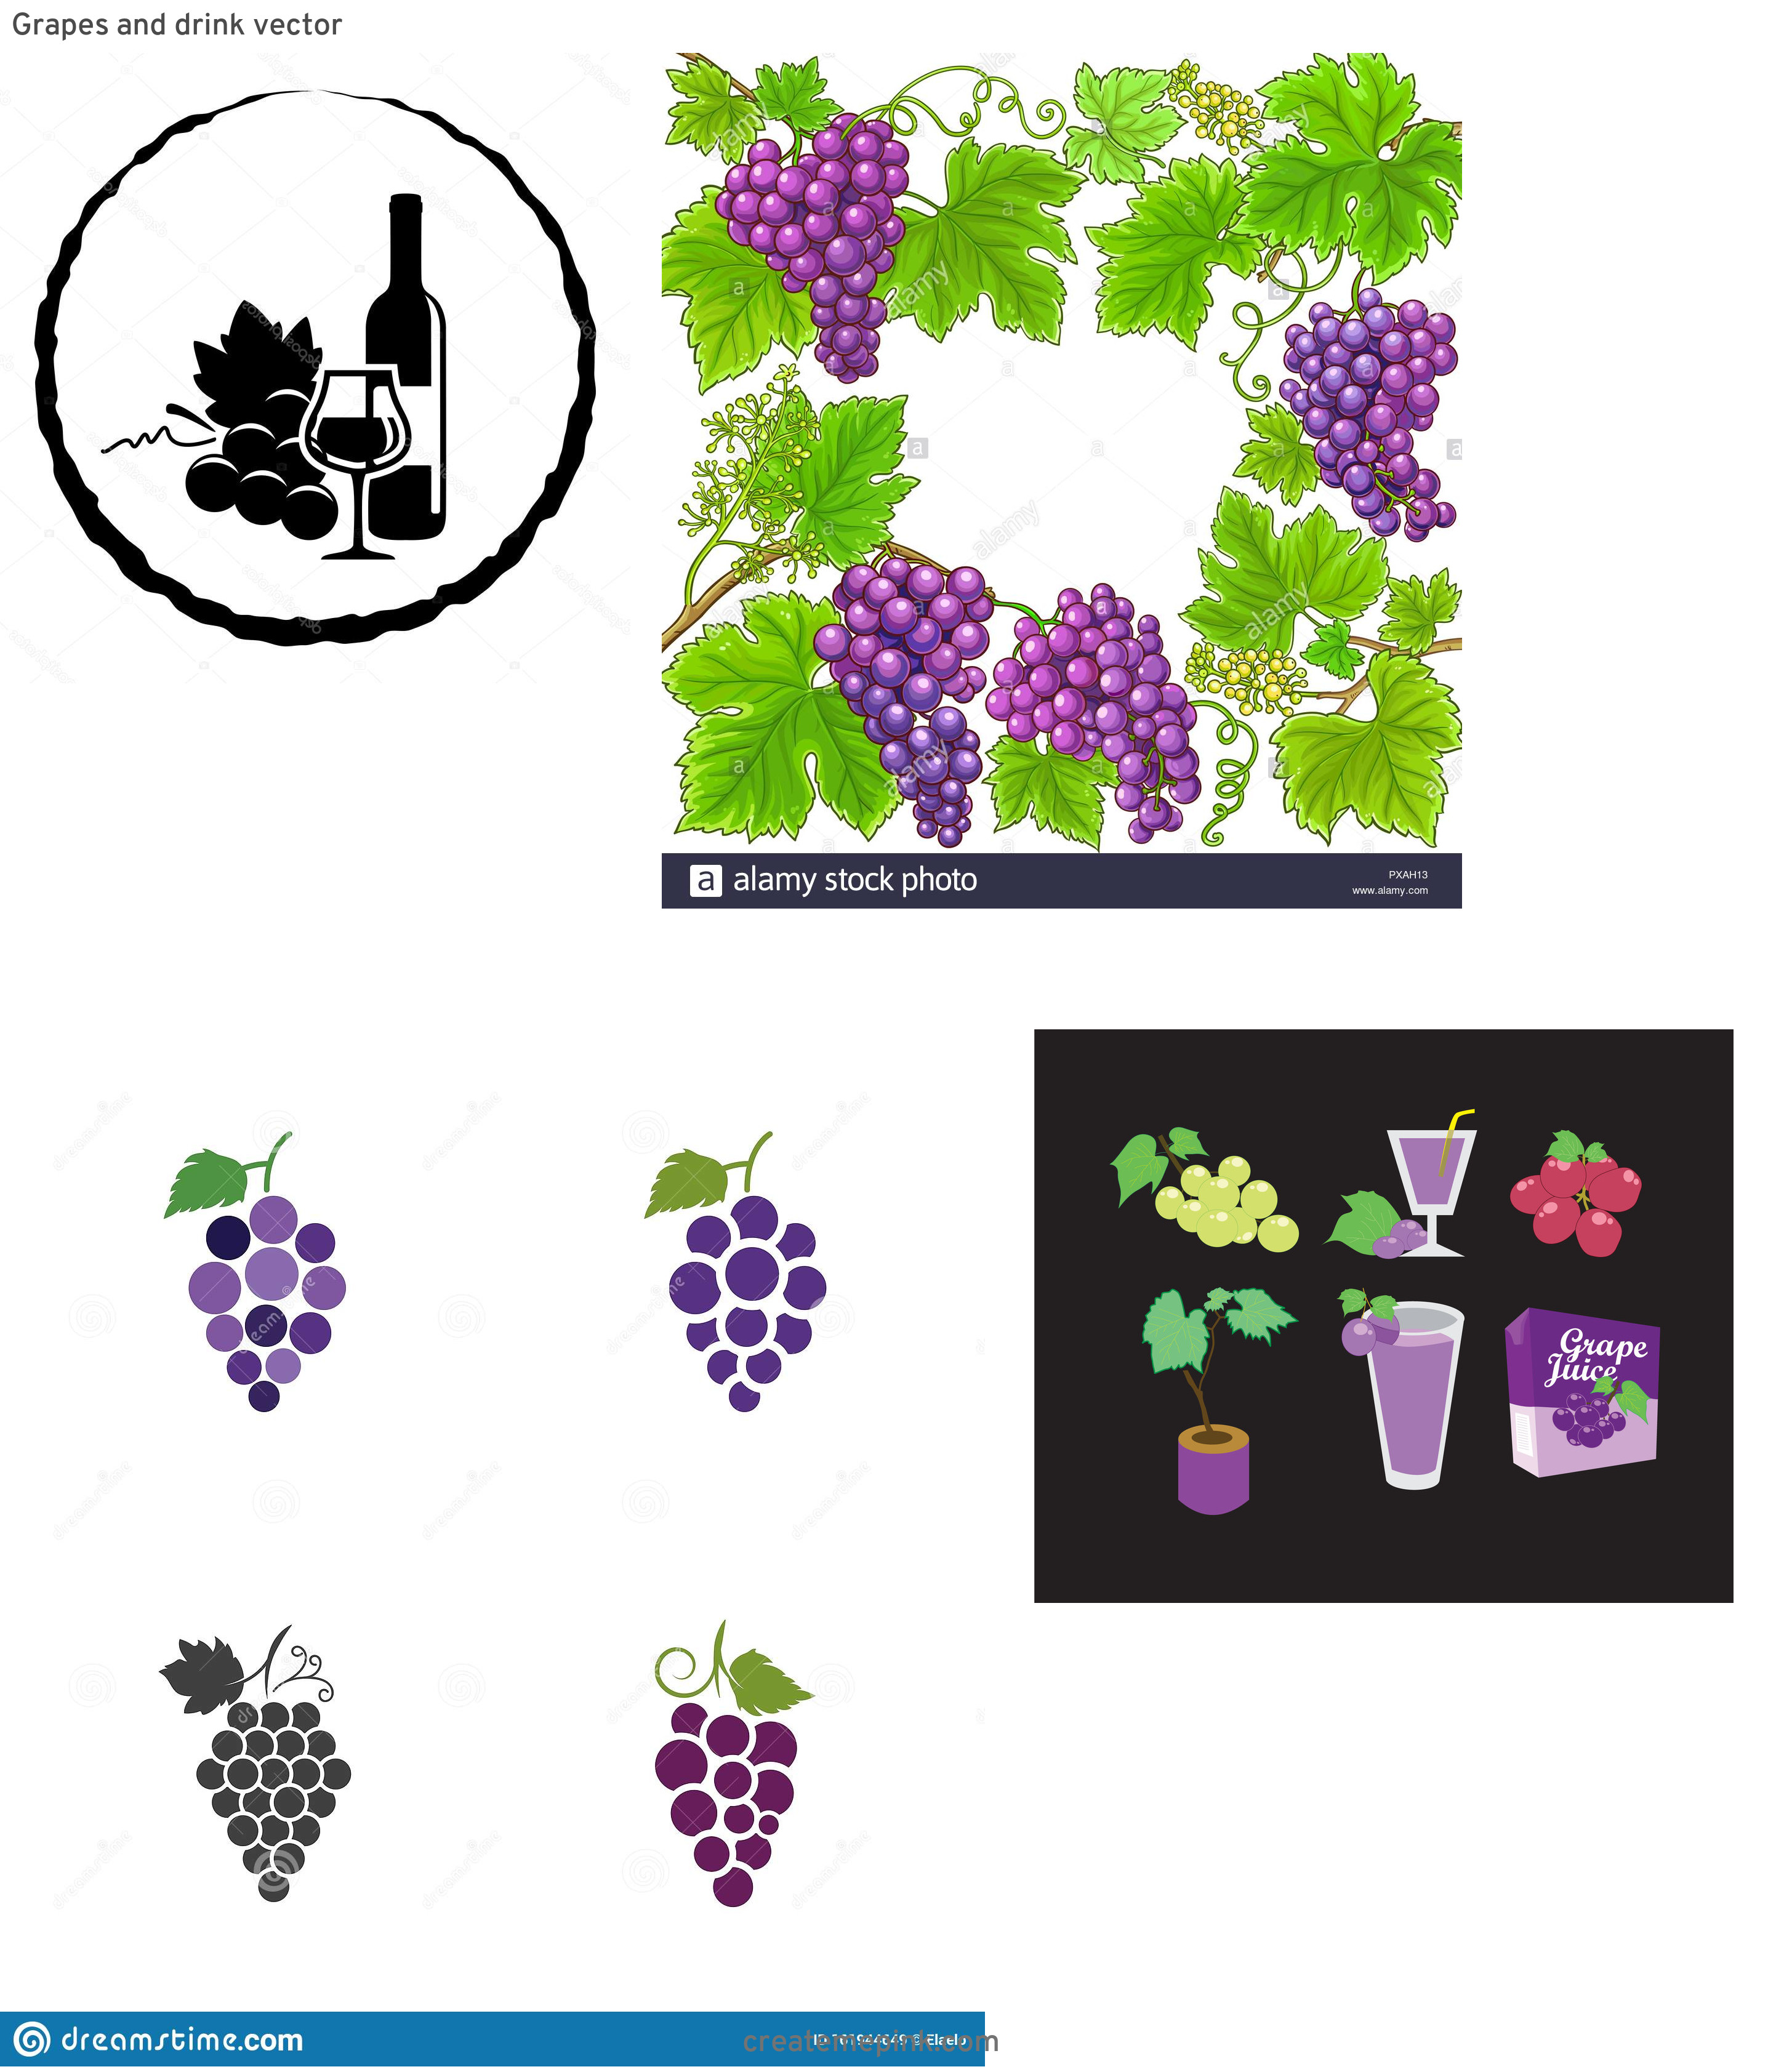 Grapes Vector Art: Grapes And Drink Vector